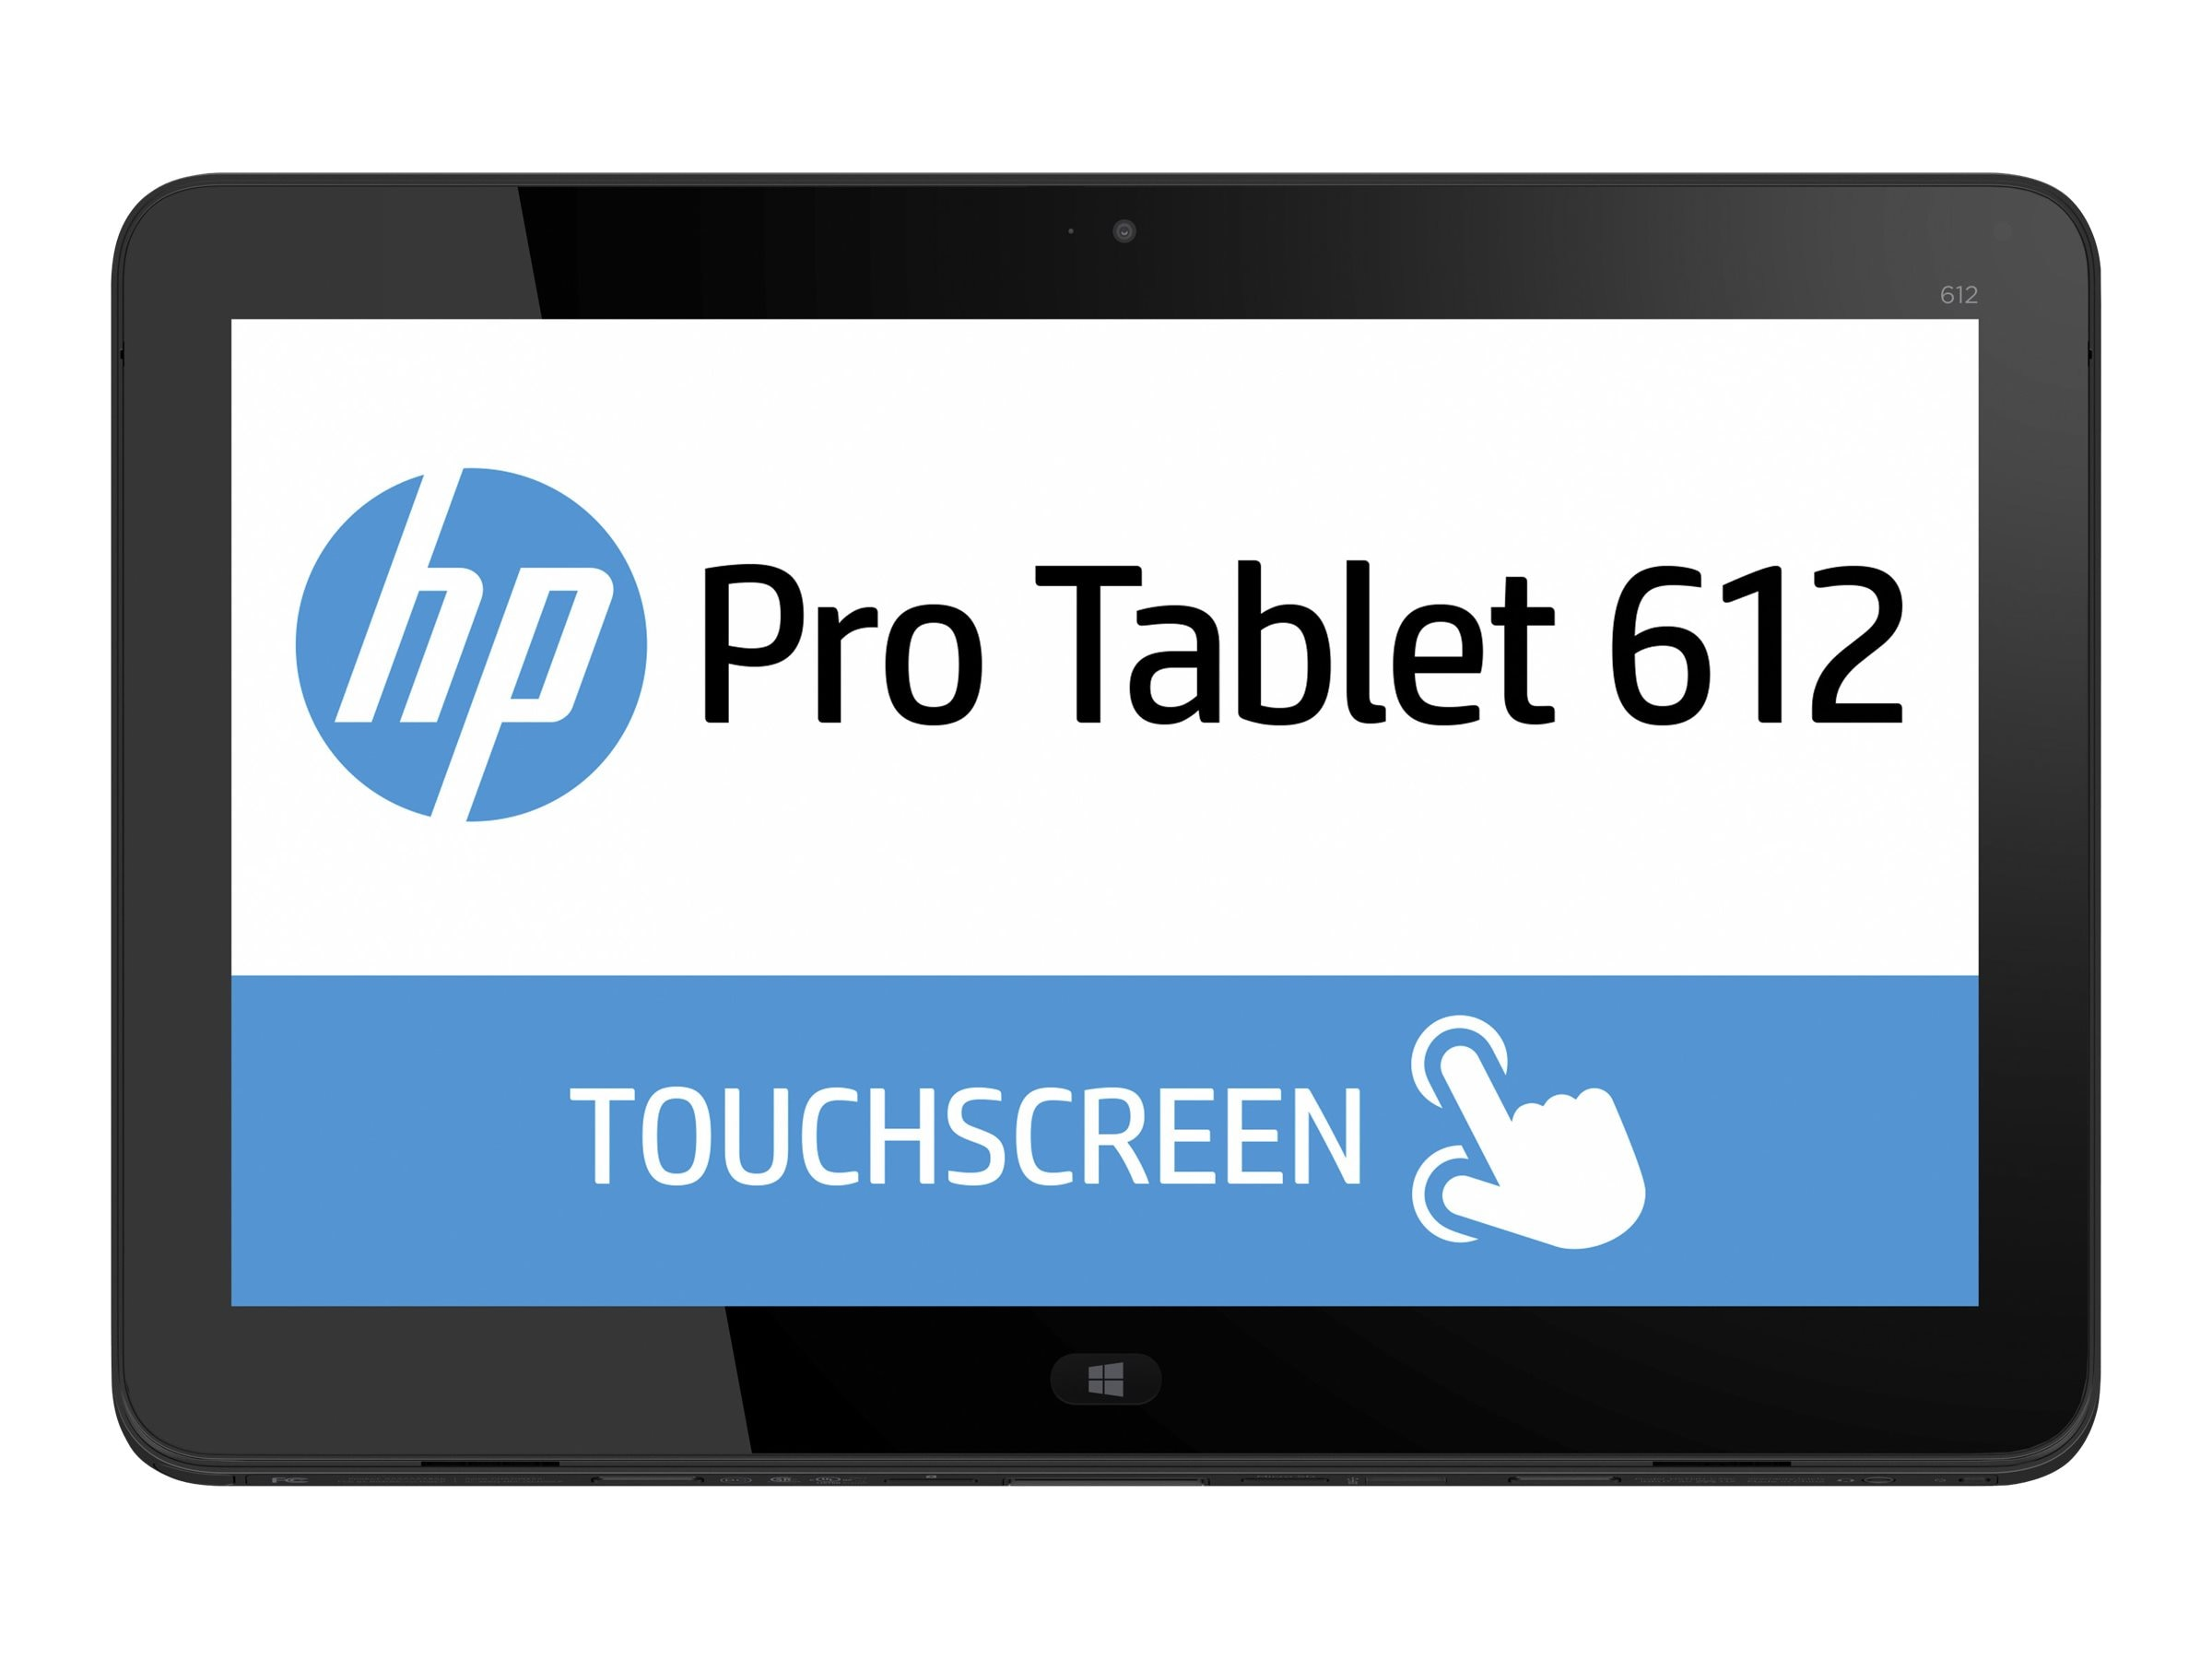 HP Pro 612 x2 G1 1.6GHz processor Windows 10 Pro 64-bit Edition, P3E18UT#ABA